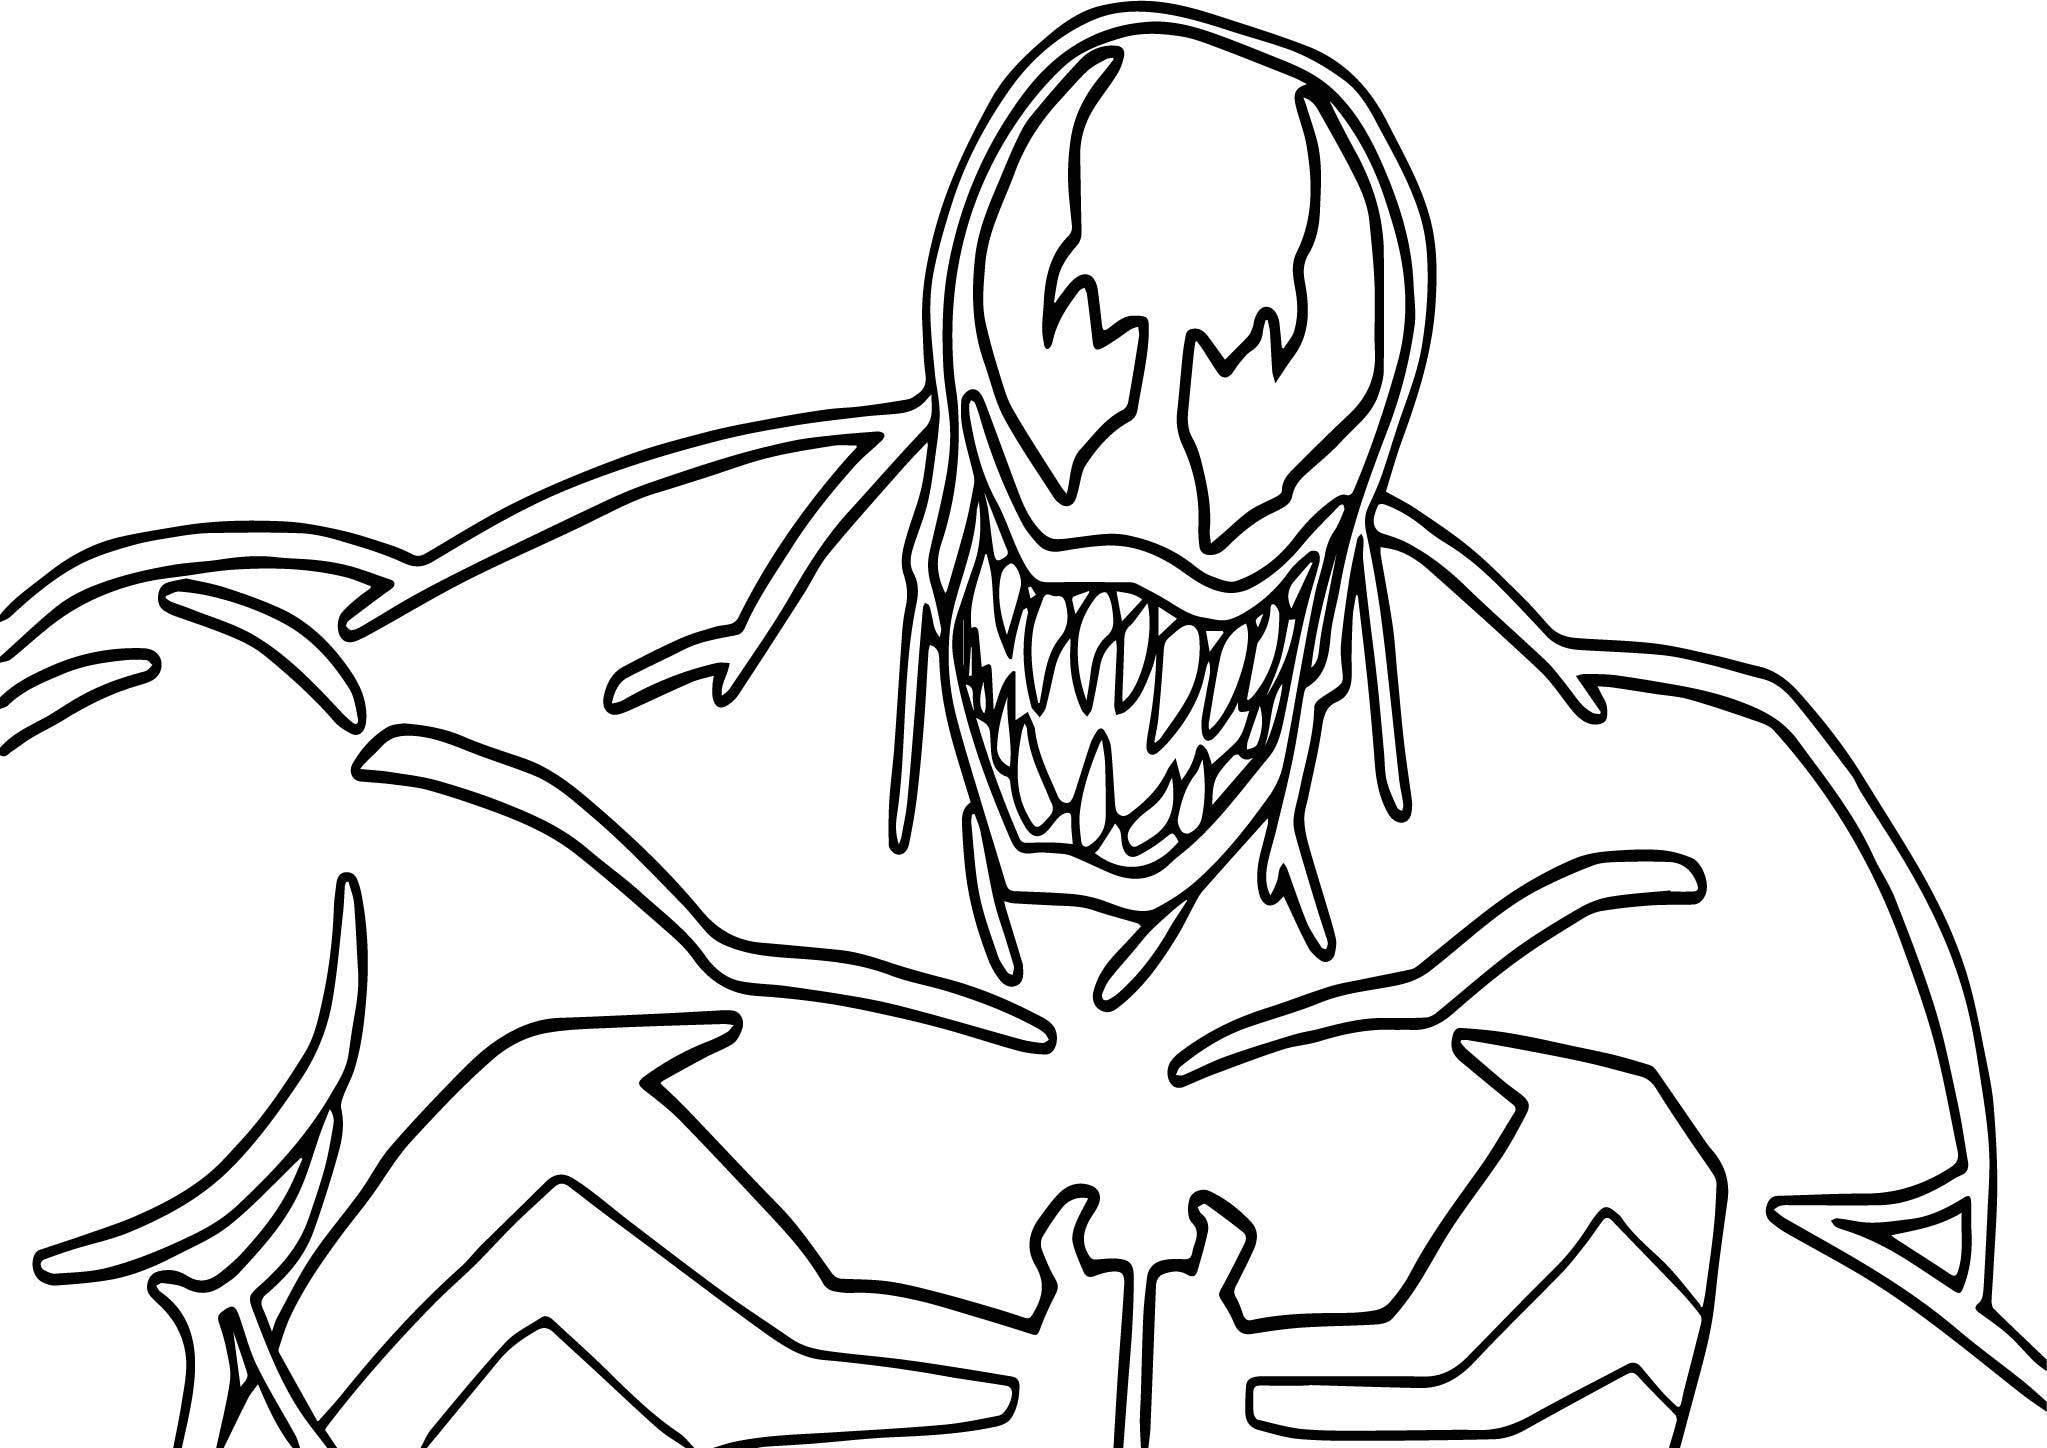 printable venom coloring pages venom coloring pages at getdrawings free download printable coloring venom pages